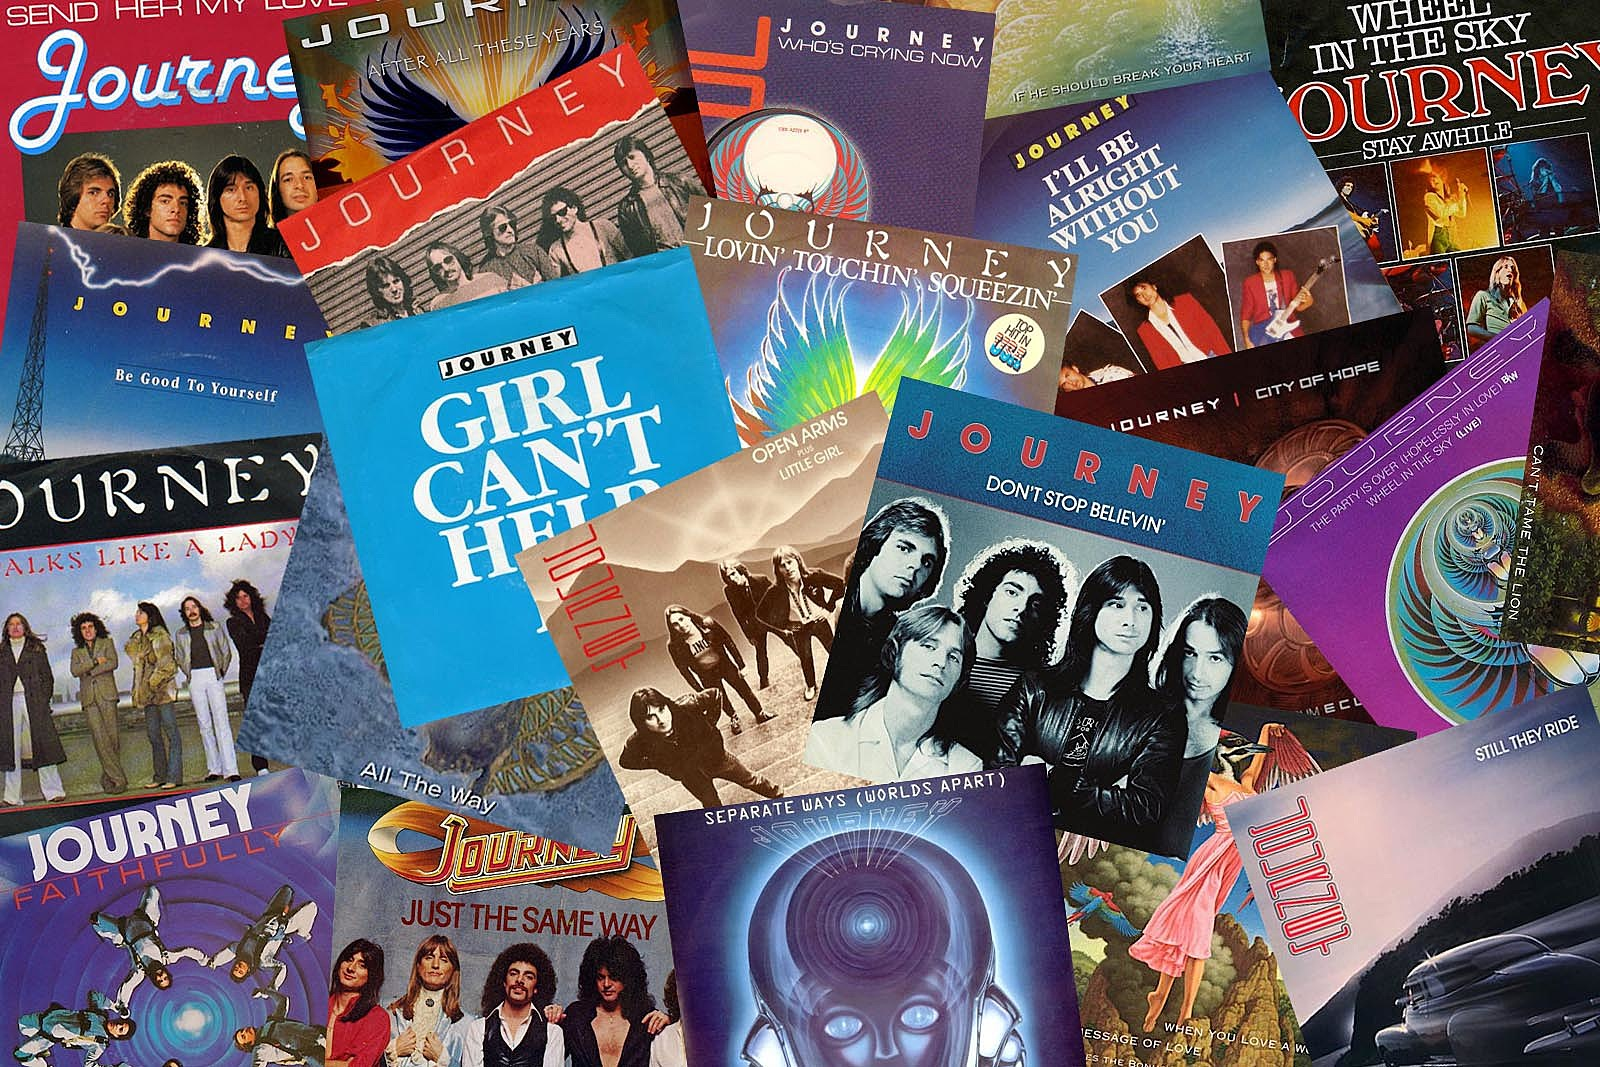 All 172 Journey Songs Ranked Worst To Best